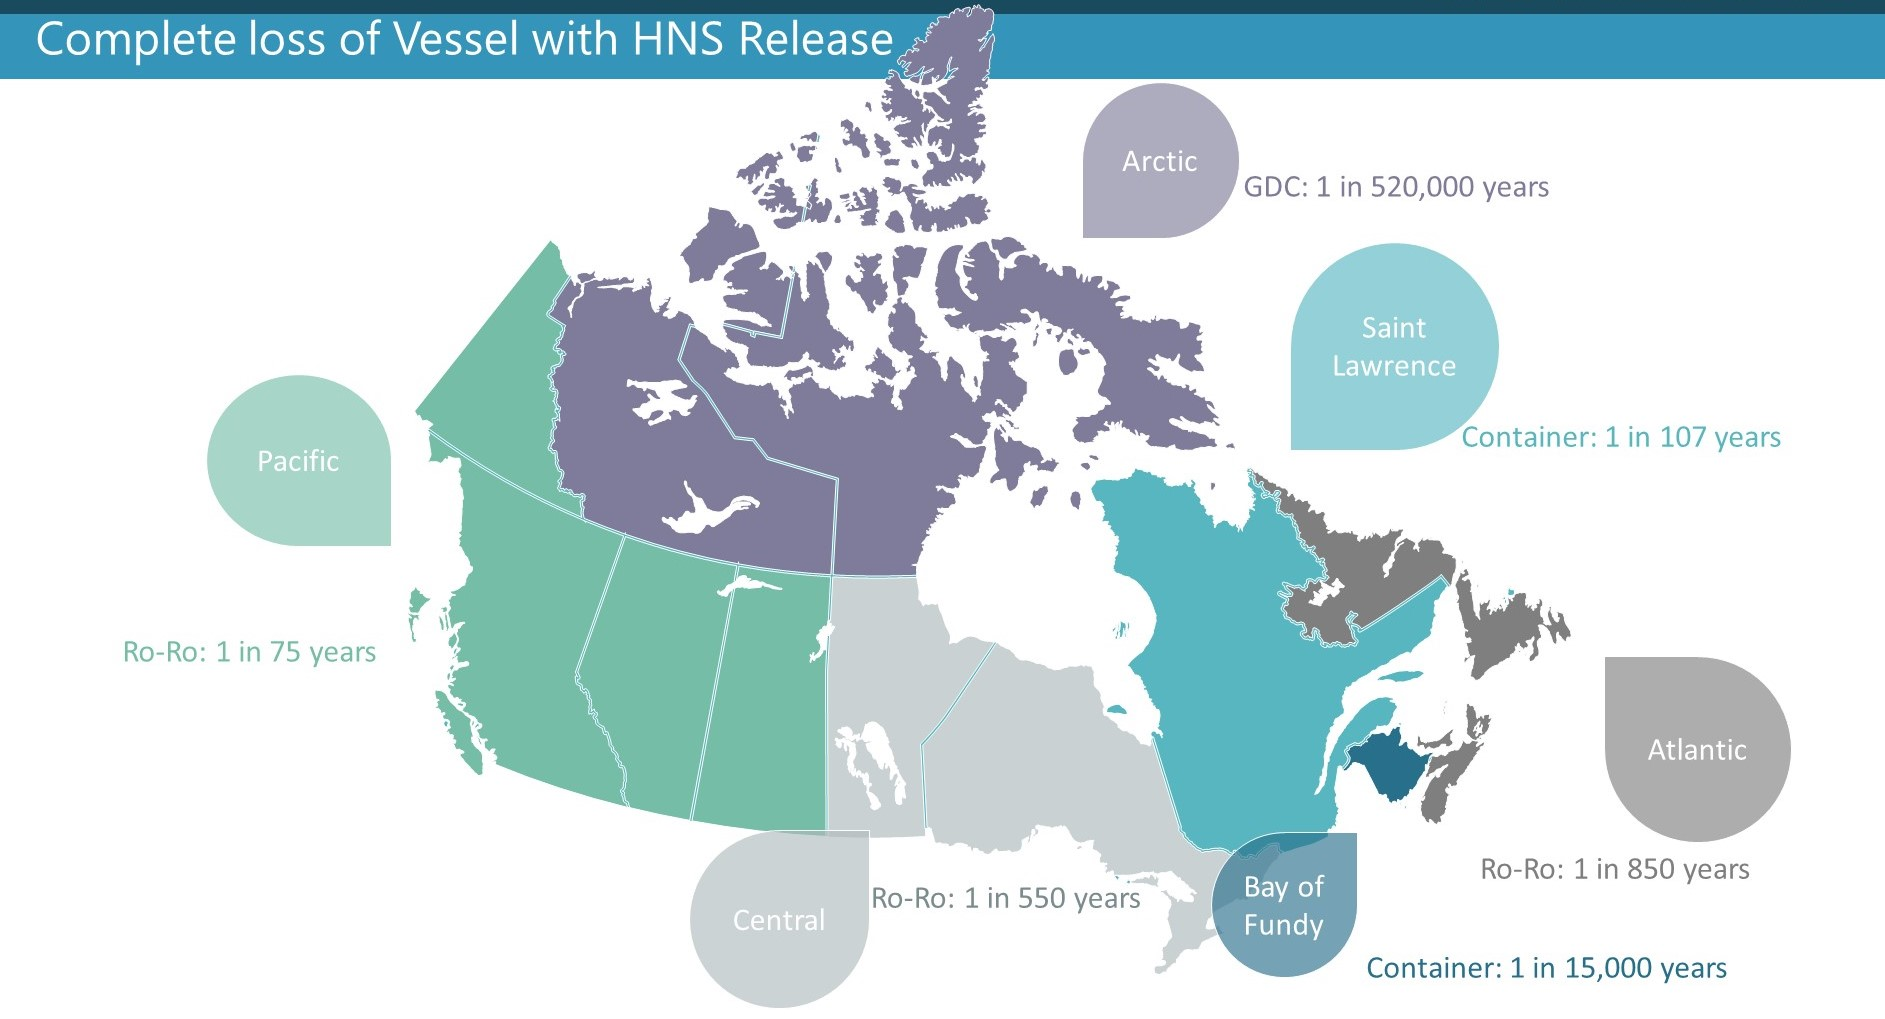 Complete loss of Vessel with HNS Release Map